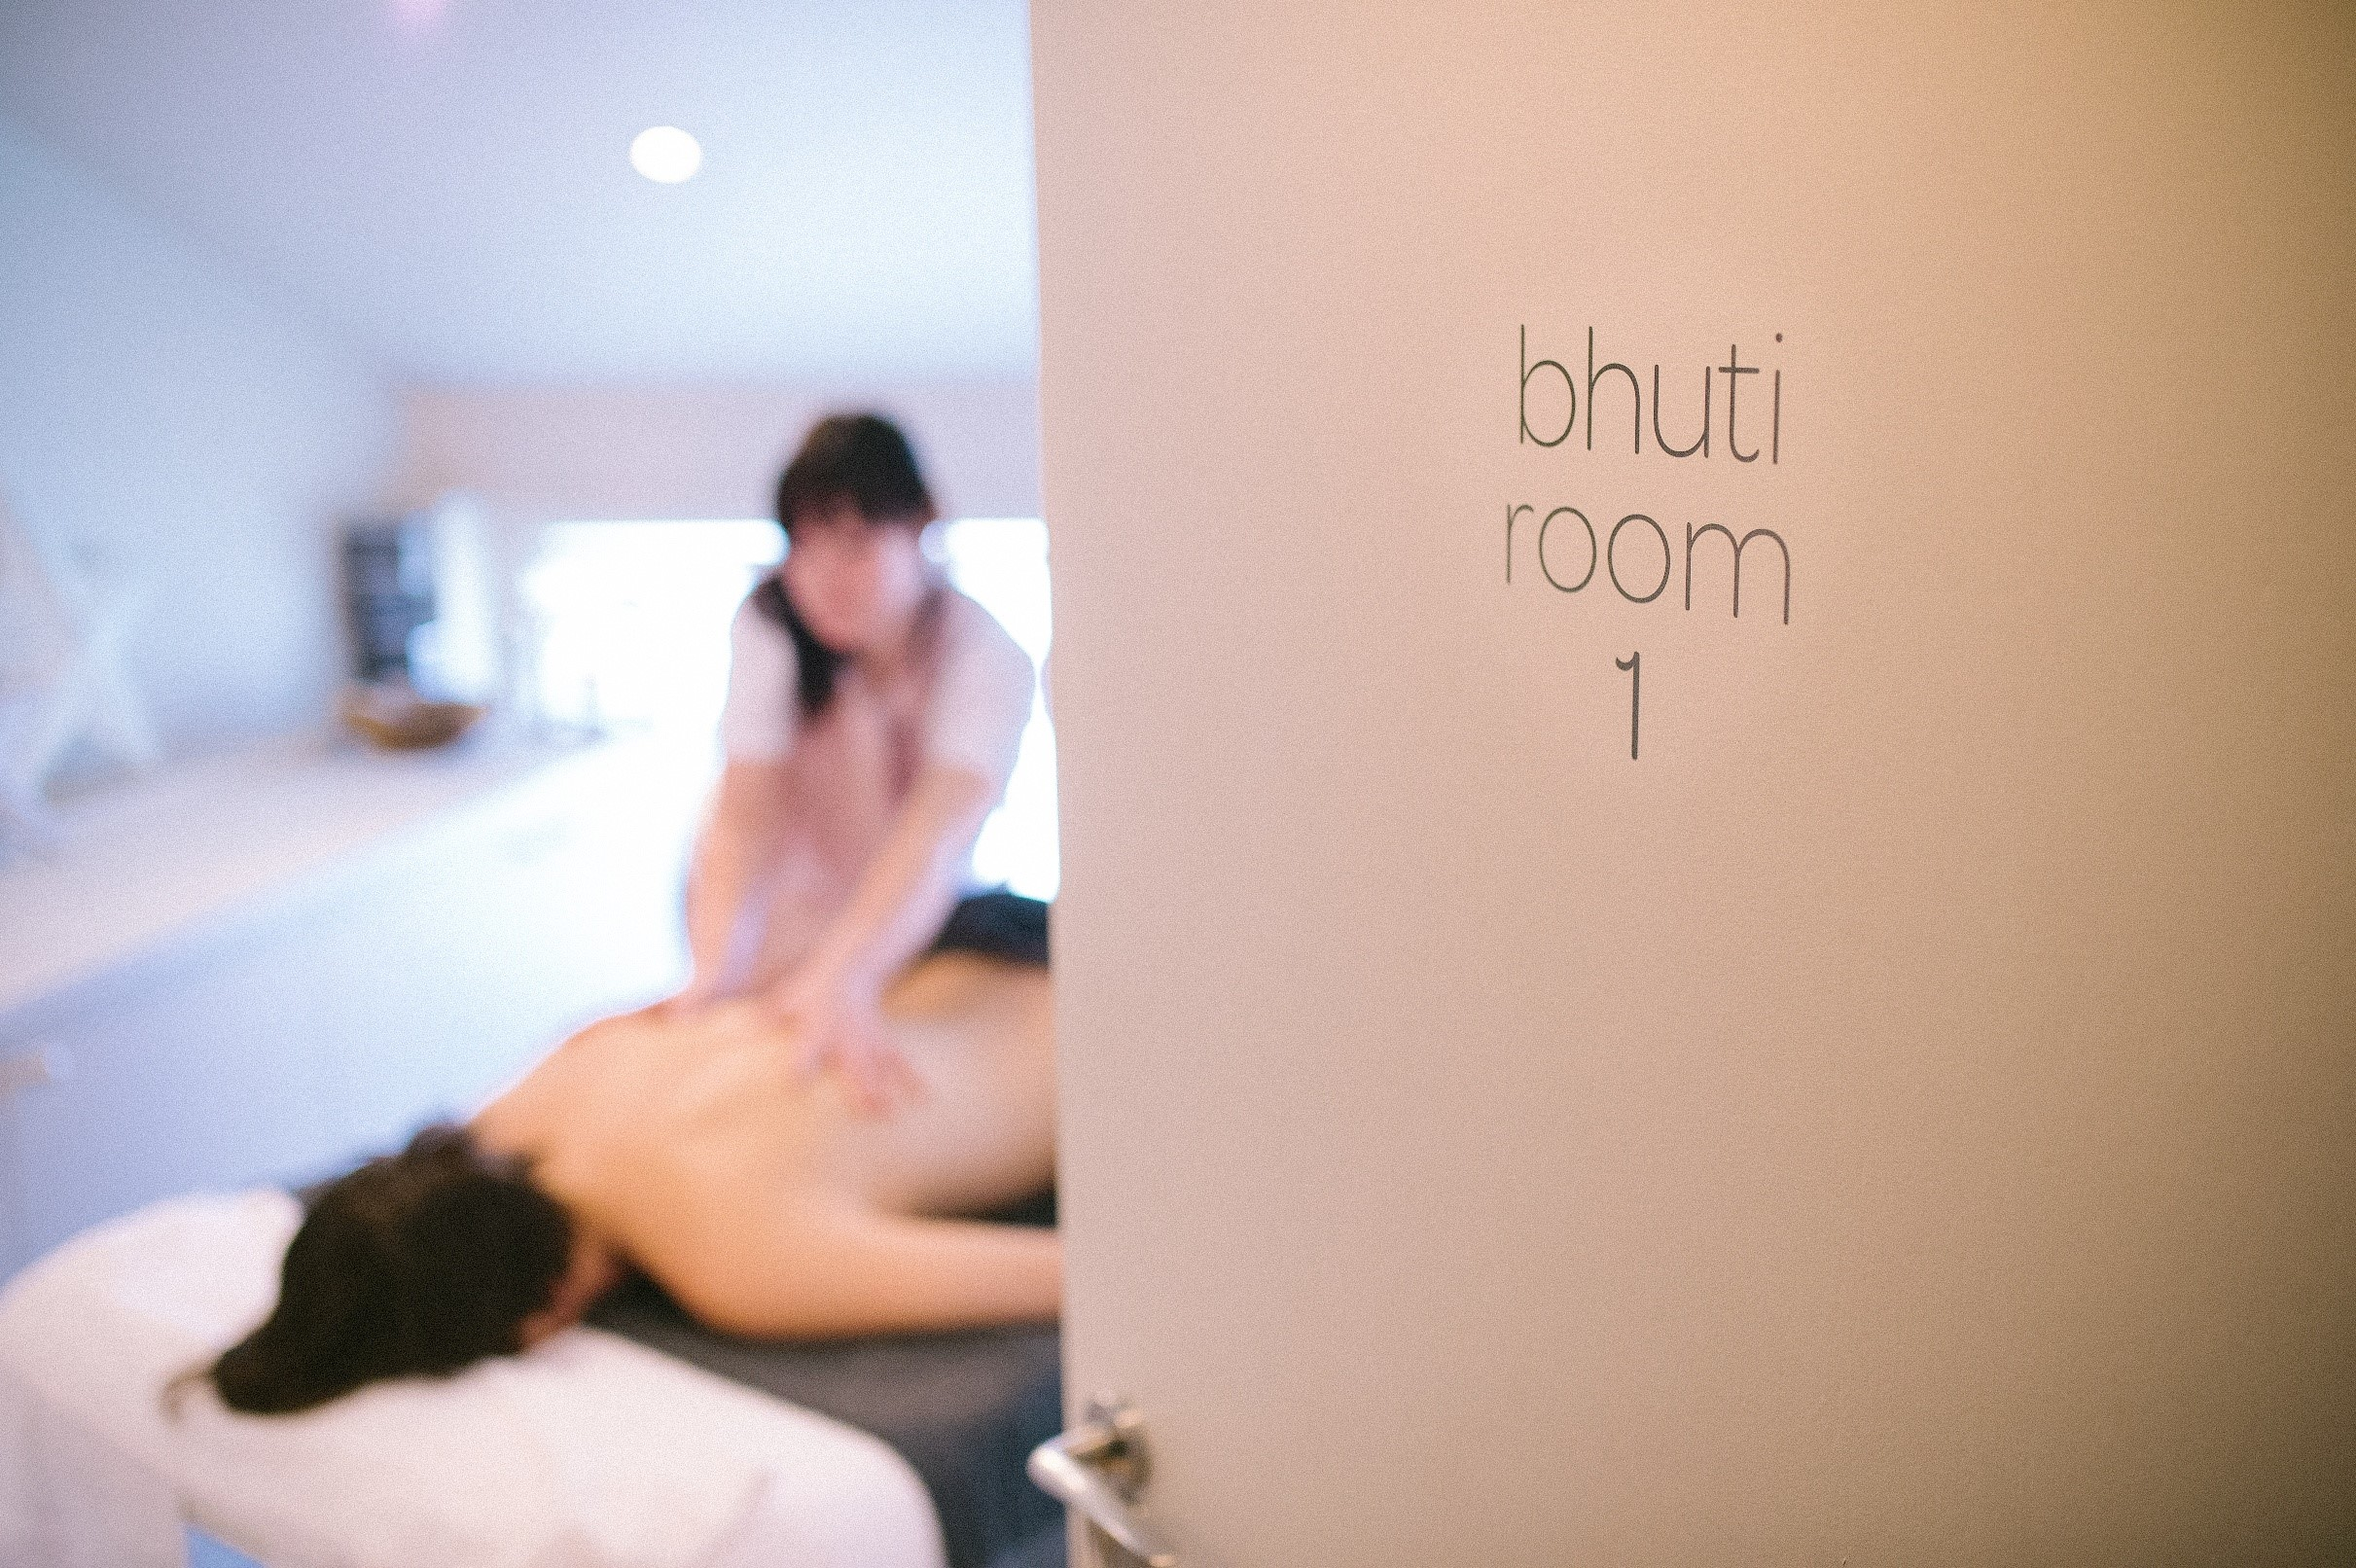 bhuti bliss massage - 60 minutes